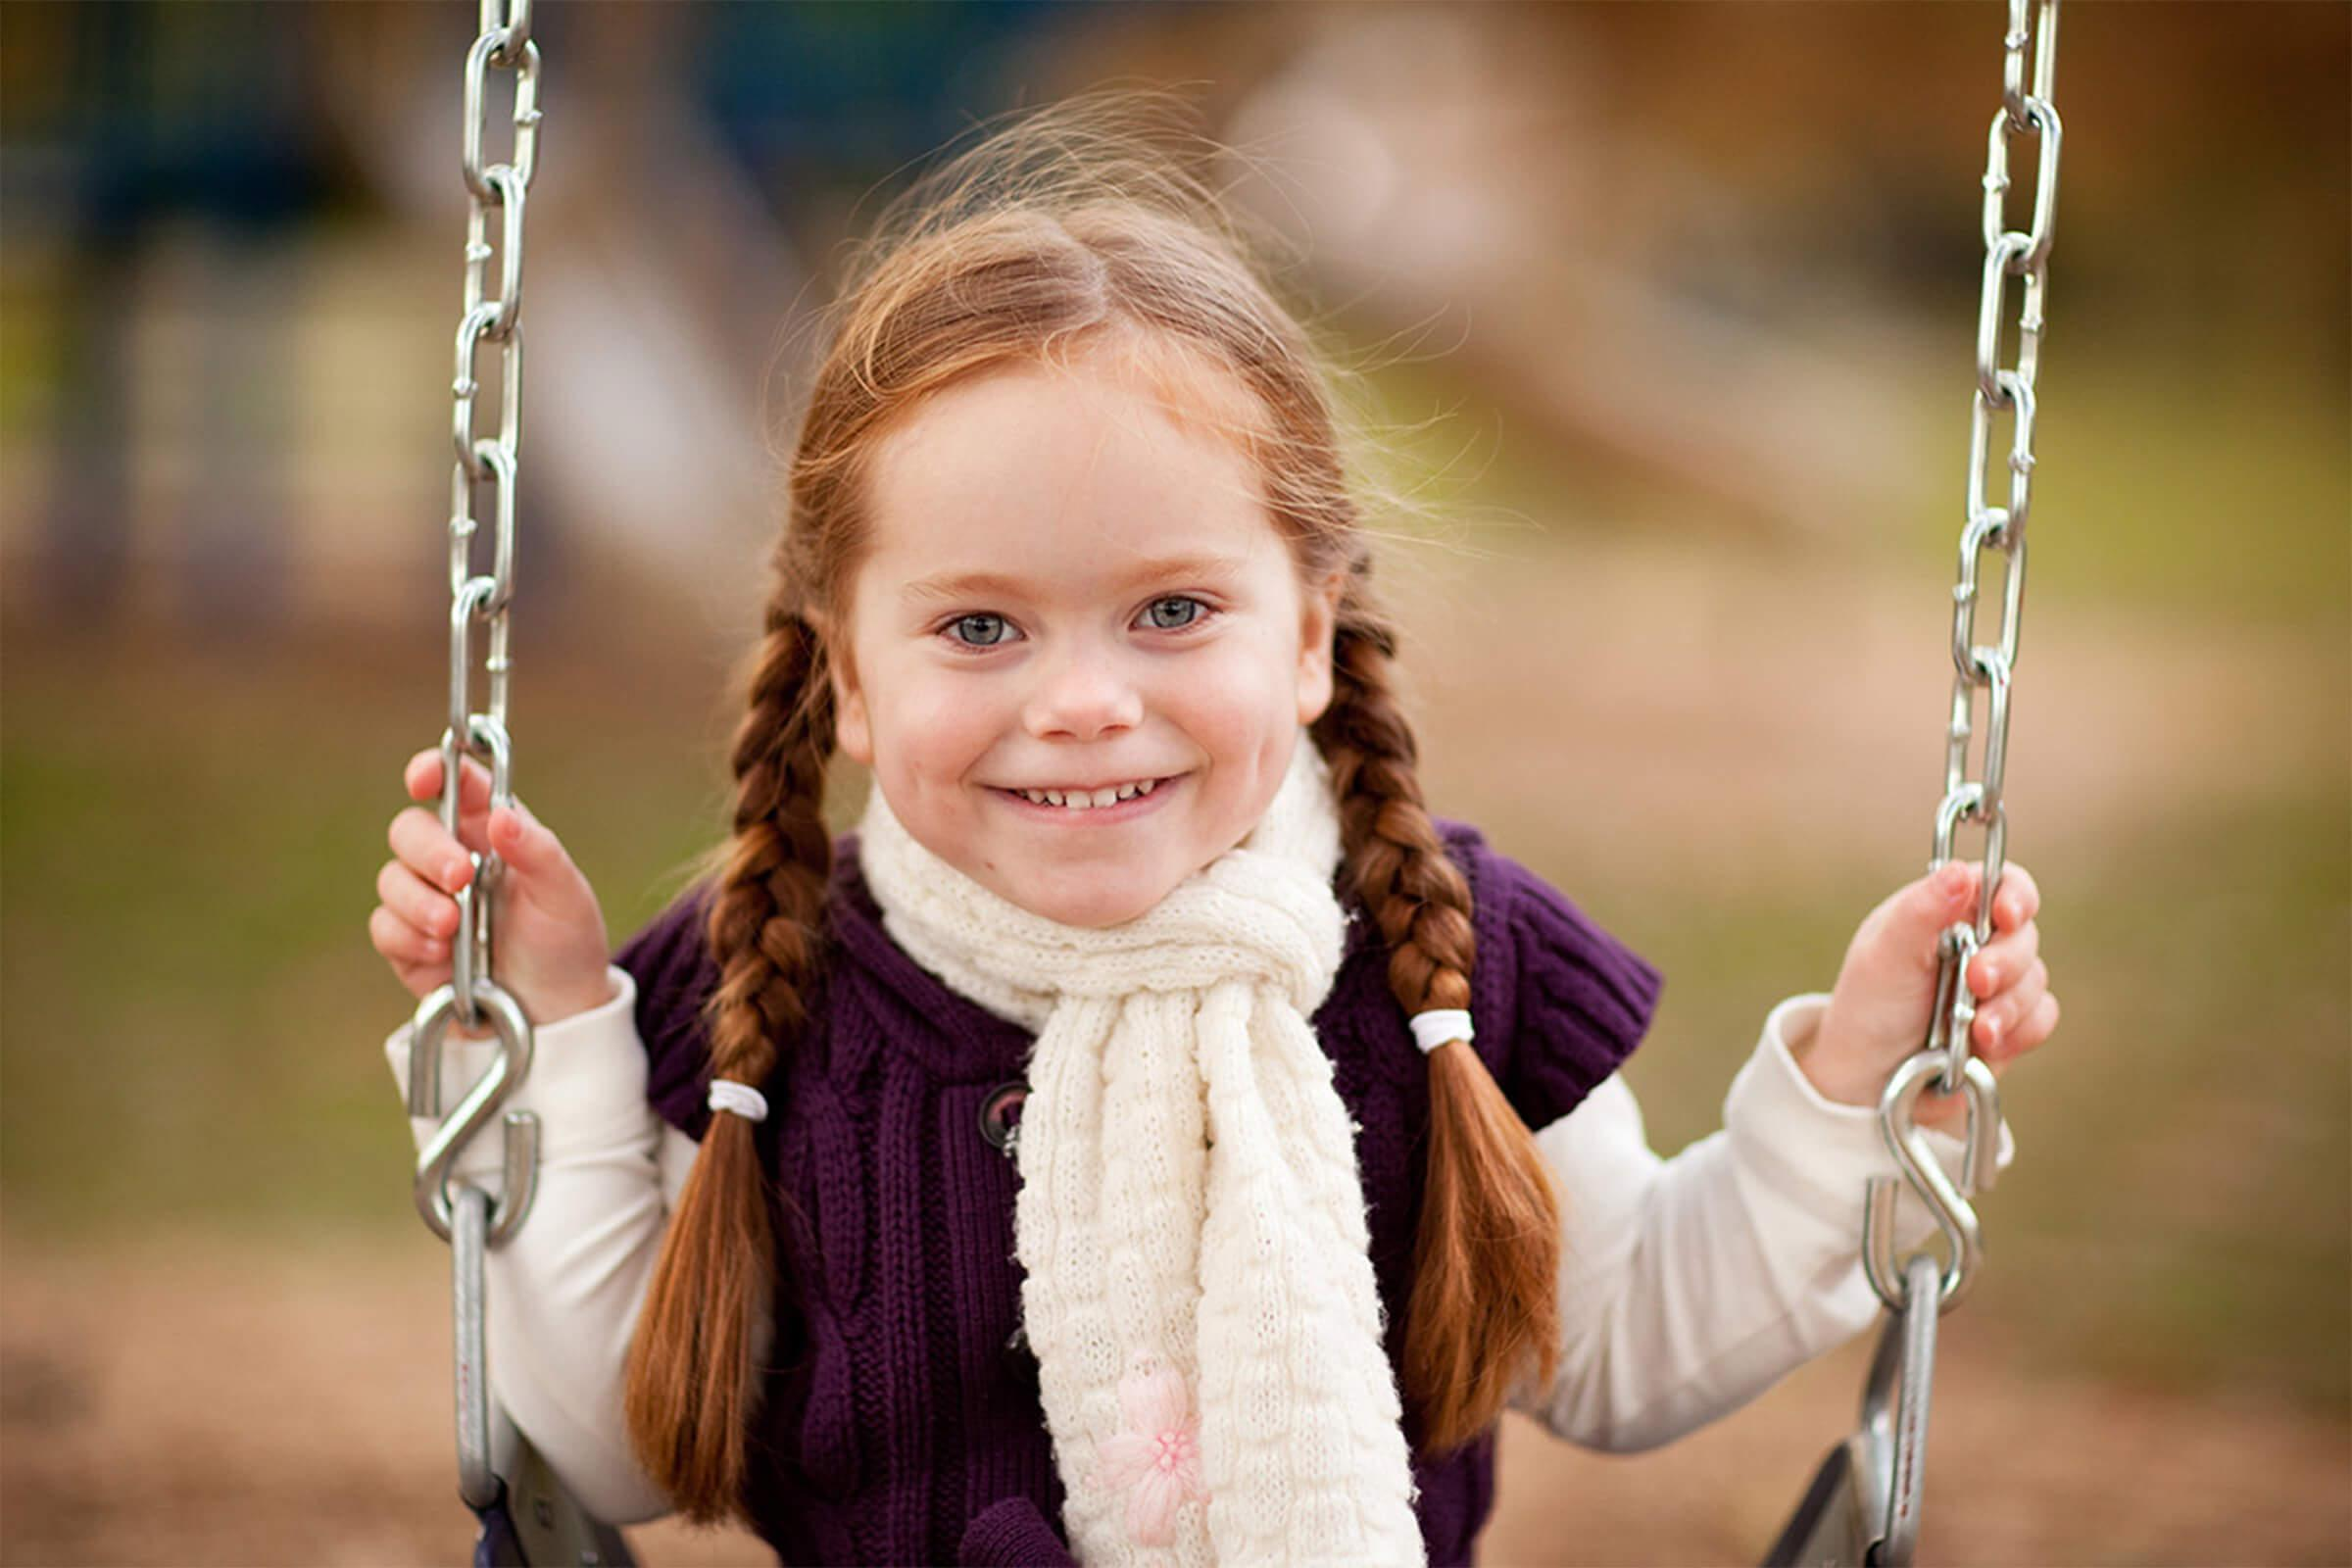 a girl is dressed in a swing